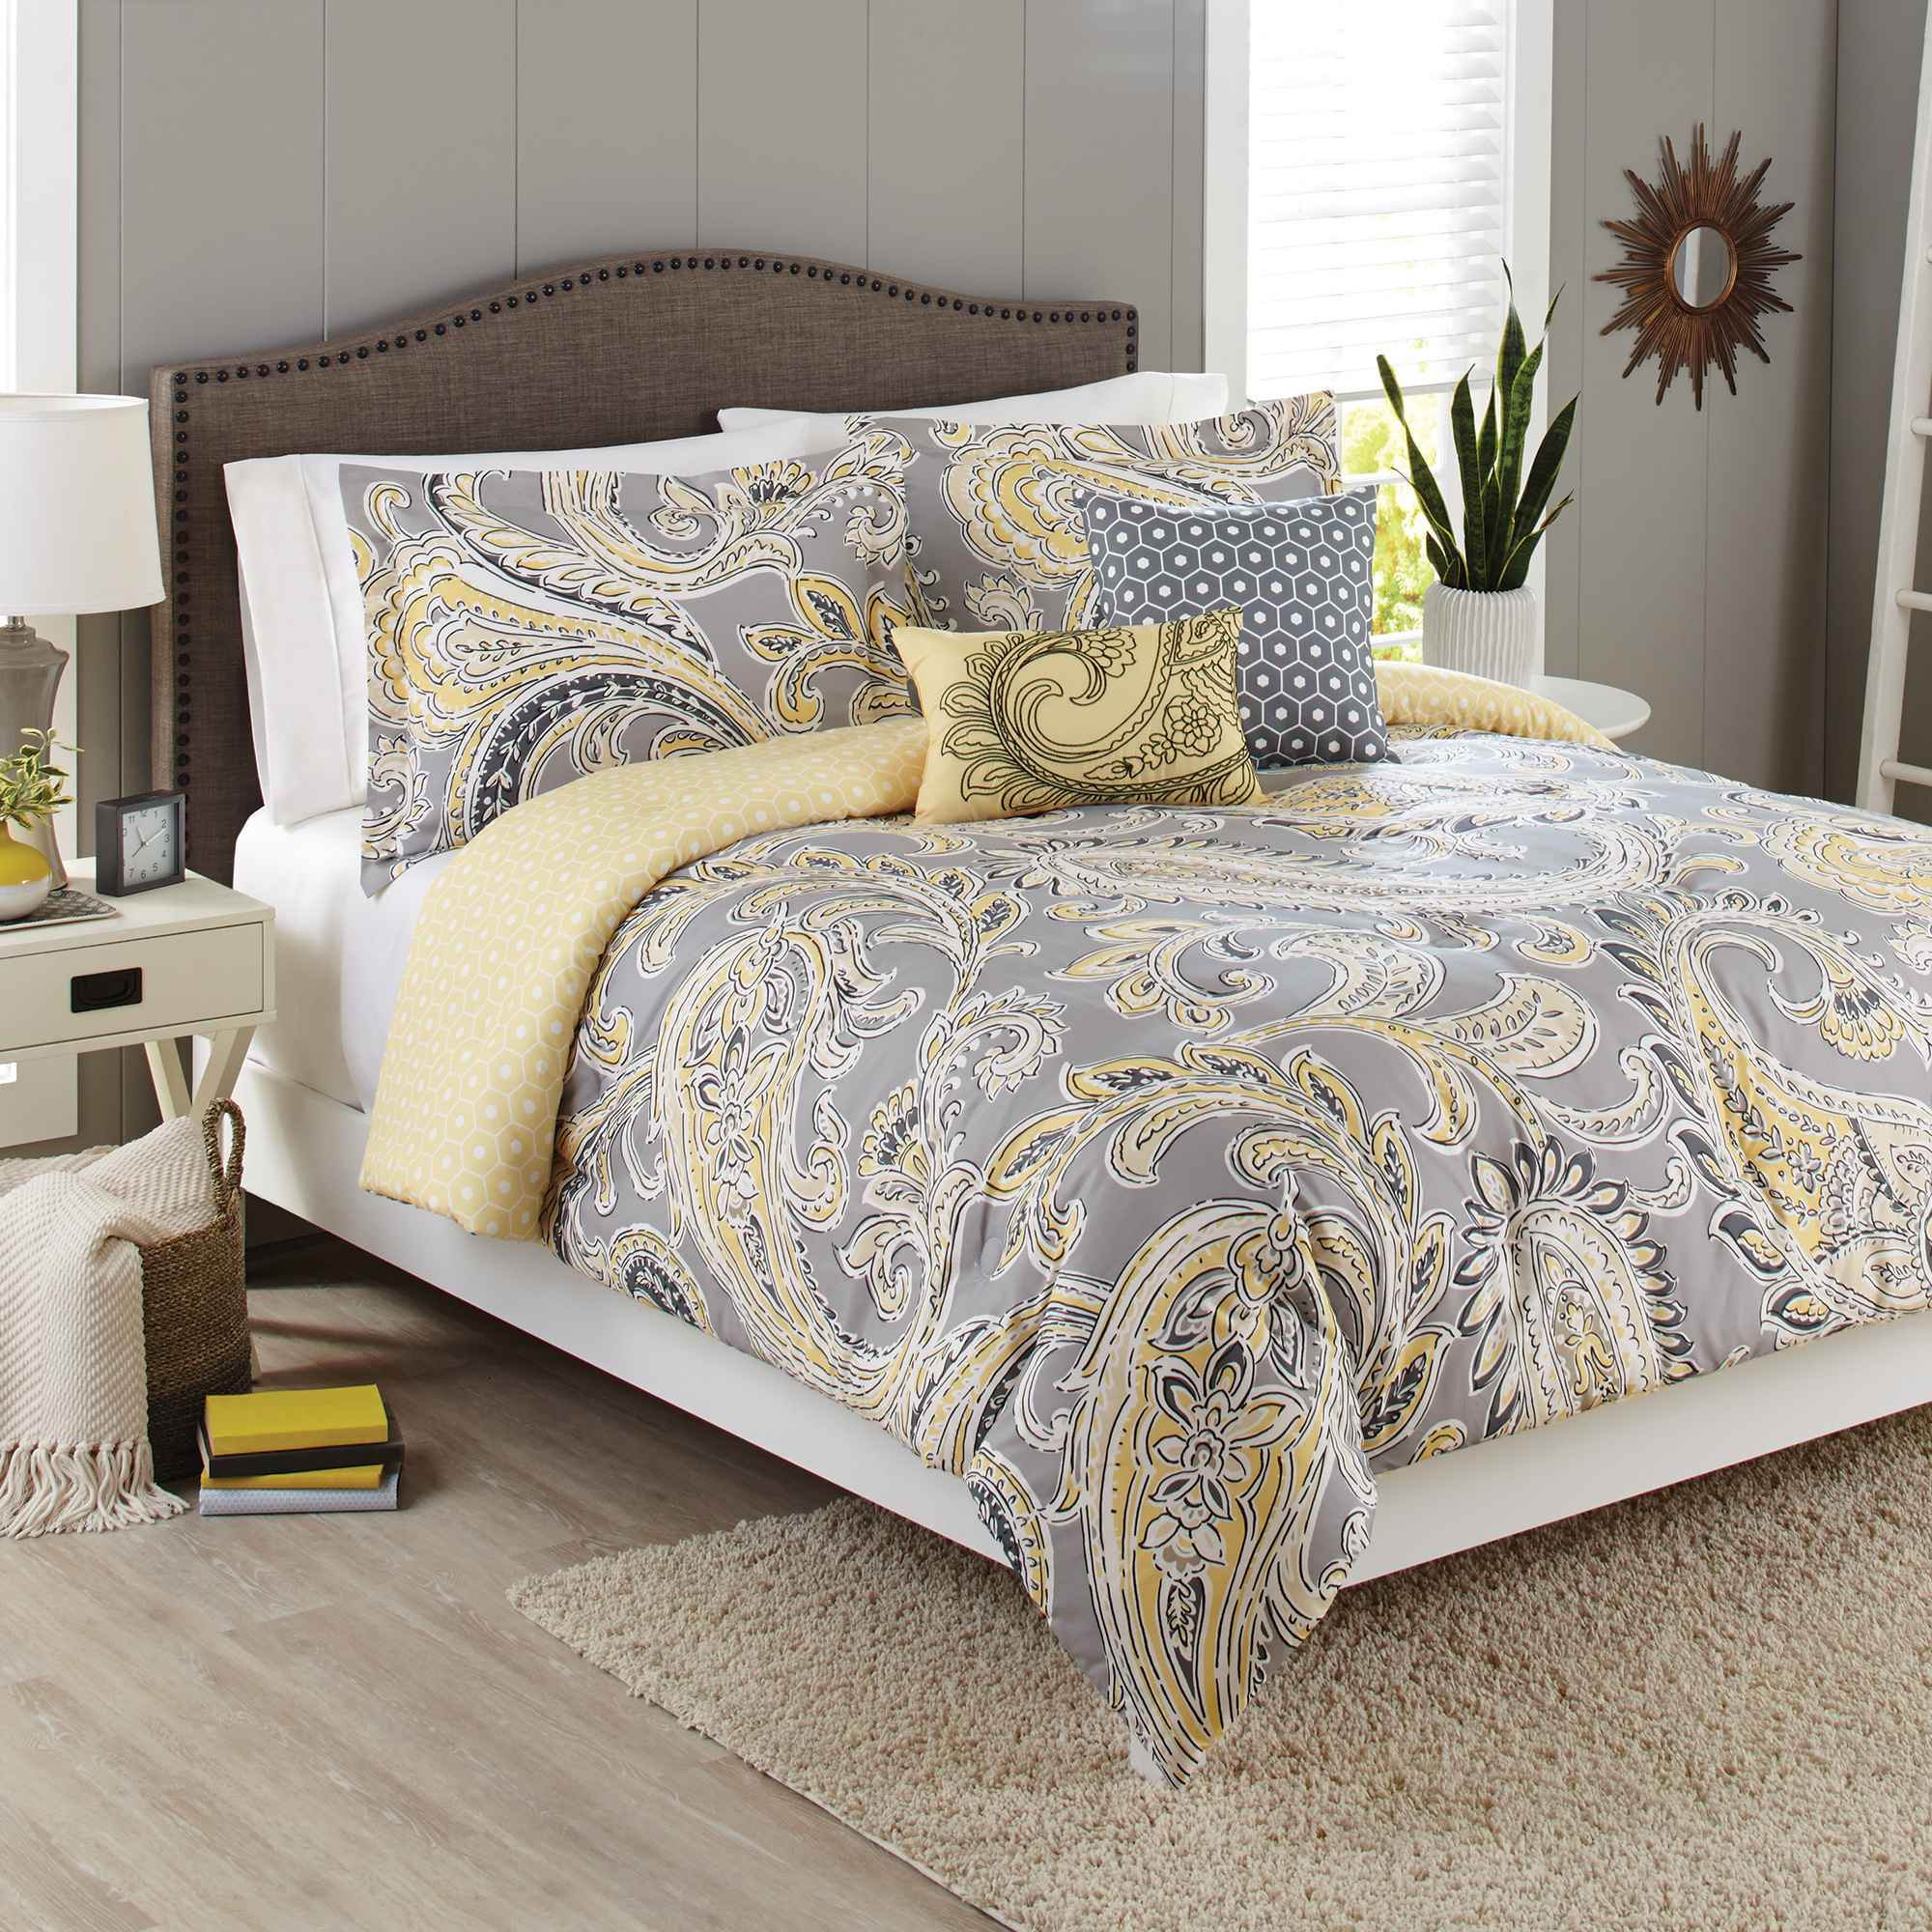 Better Homes & Gardens Full Paisley Yellow & Grey Comforter Set, 5 Piece